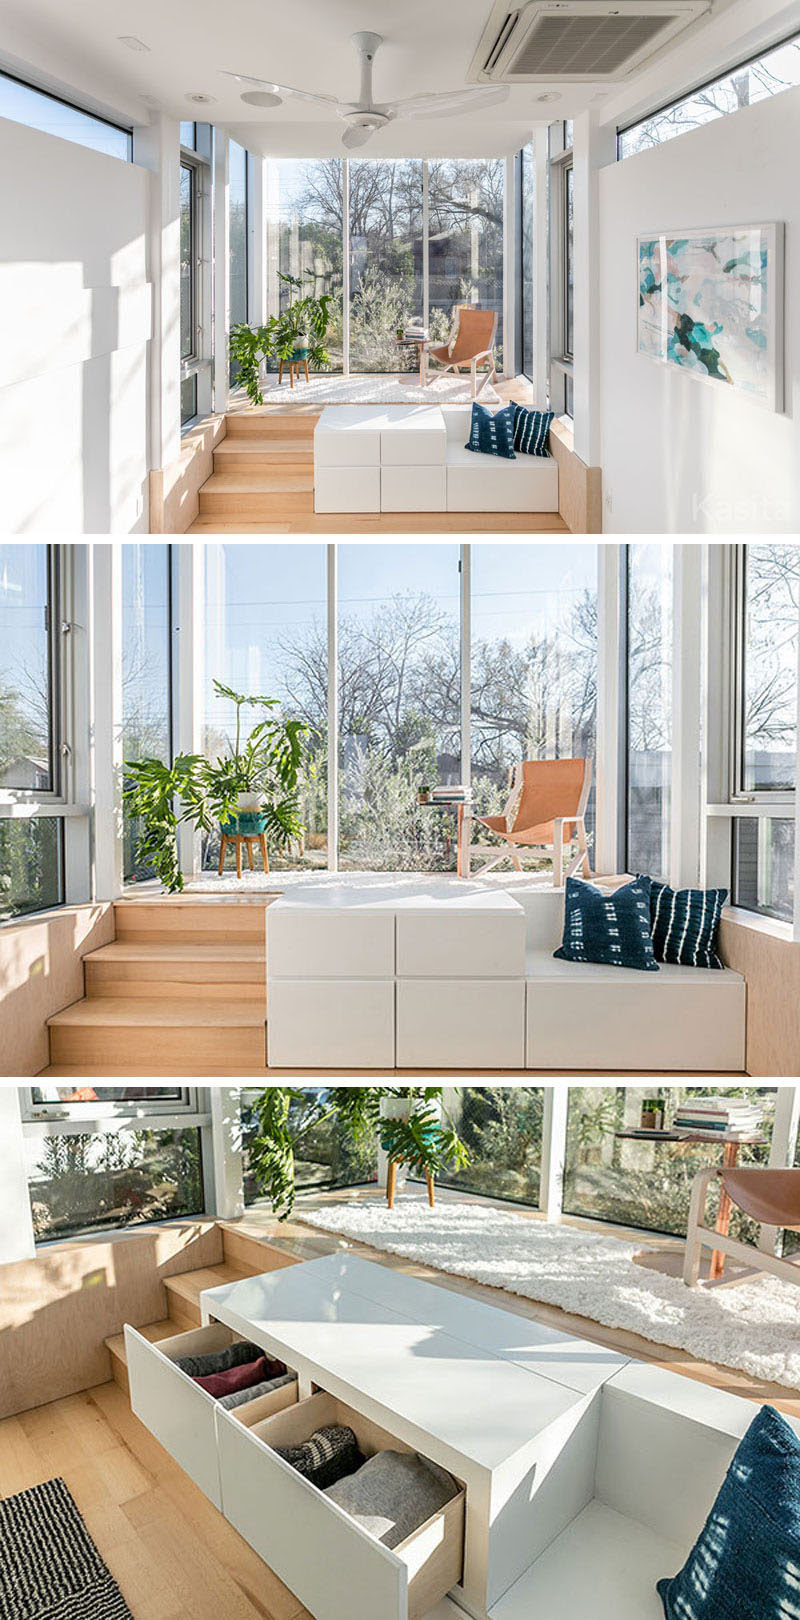 In this modern tiny house, there's a raised platform that's surrounded by floor to ceiling windows, allowing plenty of light to fill the small space. A flat-screen television is hidden within the white storage cube with drawers, that also has a small bench next to it.